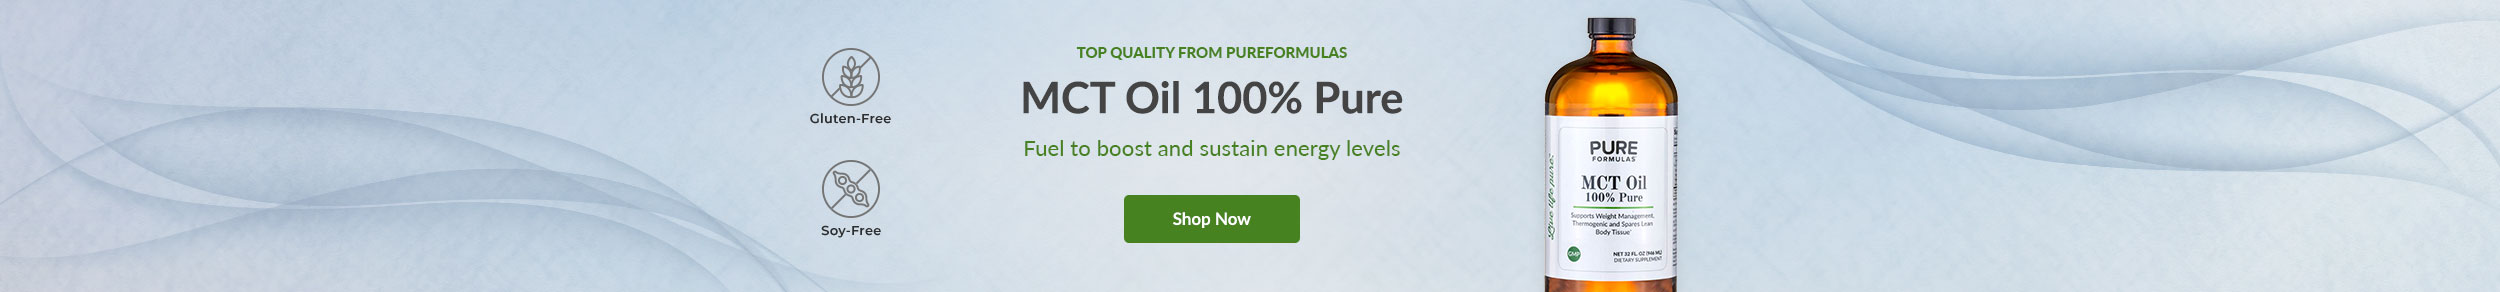 https://i3.pureformulas.net/images/static/Pureformulas-Energy-Support-MCT-Oil_slide2_062318.jpg